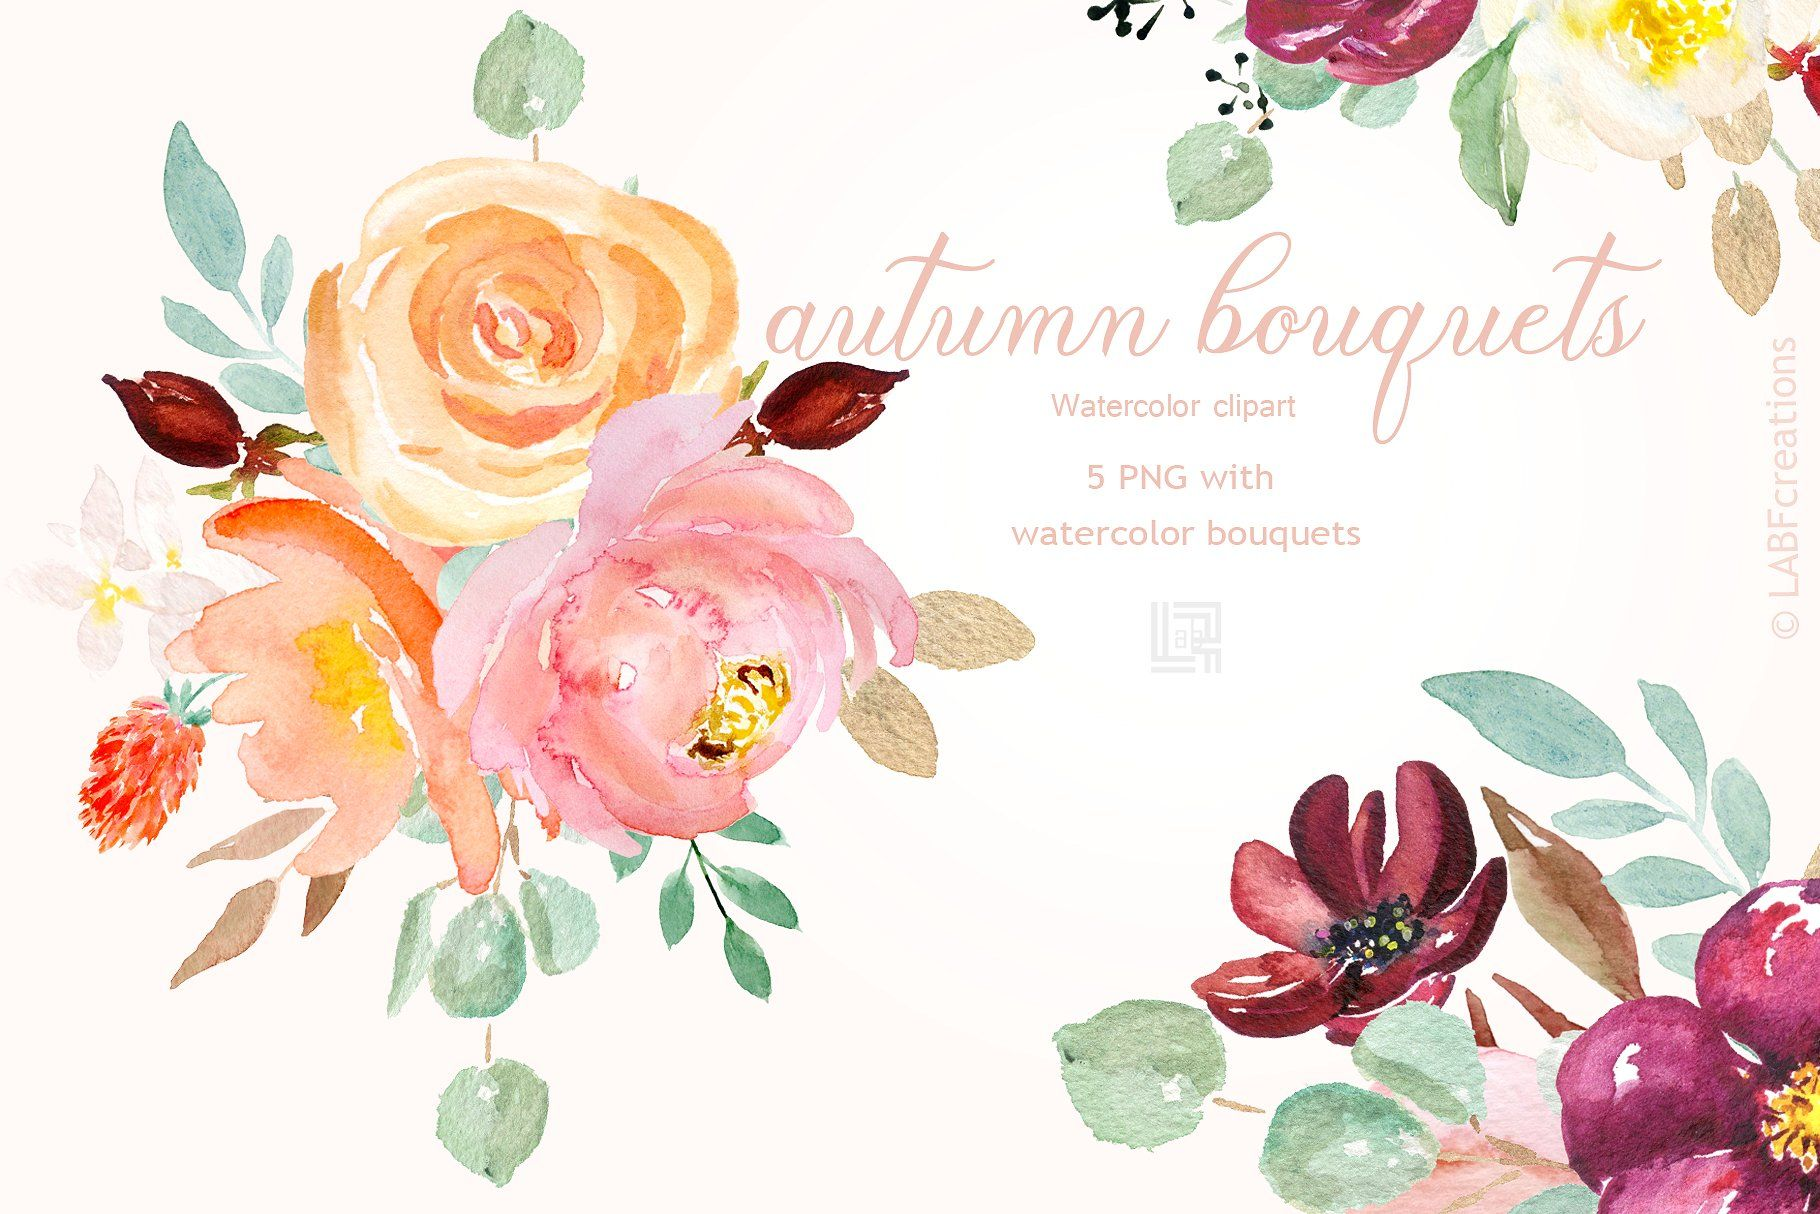 25 OFF Autumn watercolour bouquets #yellow#burgundy#shades.